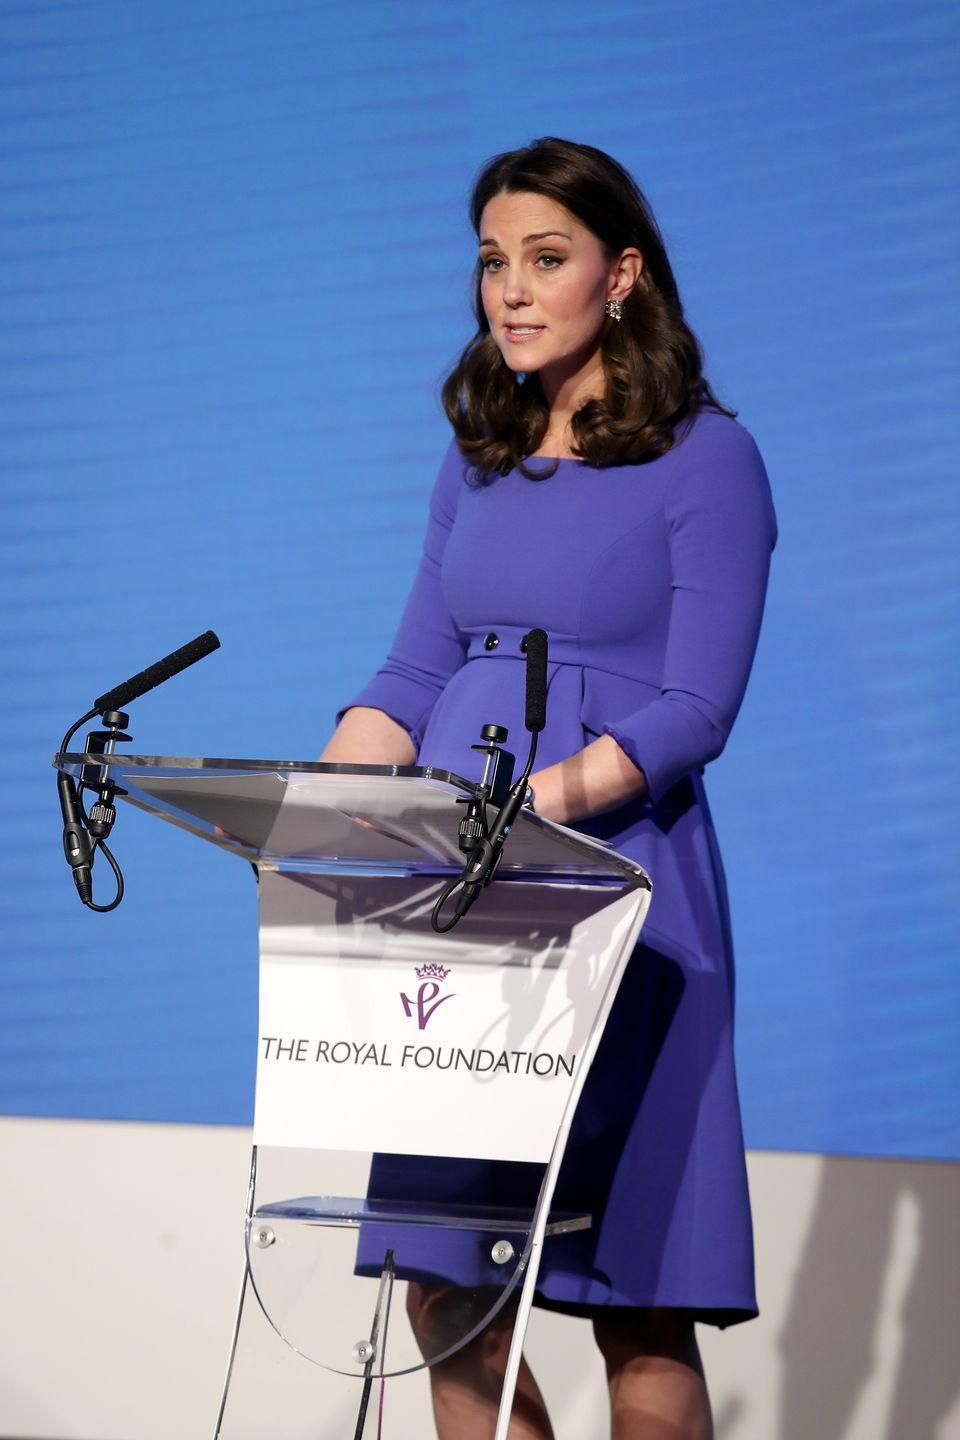 "<p>Duchess Kate wore a button-detailed blue dress by Seraphine with a pair of navy heels <a href=""https://www.townandcountrymag.com/society/tradition/a18921806/meghan-markle-comments-me-too-times-up/"" rel=""nofollow noopener"" target=""_blank"" data-ylk=""slk:at the Royal Foundation Forum,"" class=""link rapid-noclick-resp"">at the Royal Foundation Forum,</a> where she appeared with Meghan Markle, Prince Harry, and Prince William. </p>"